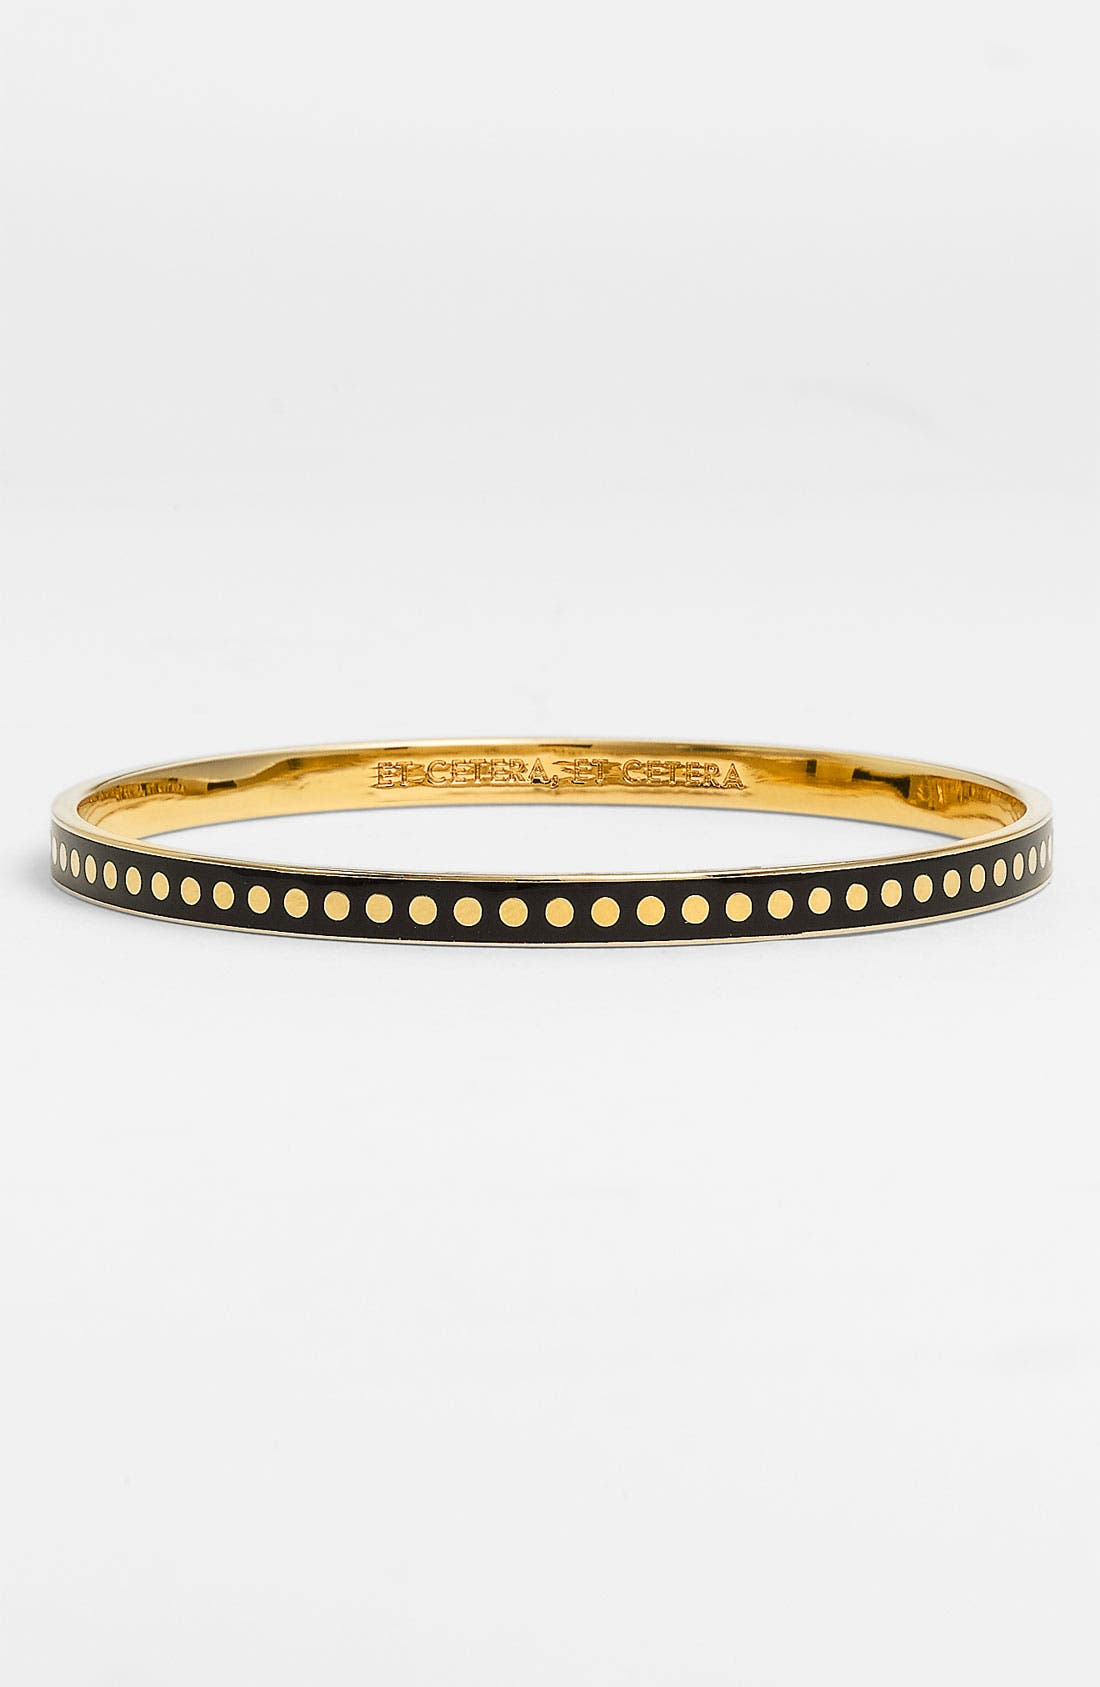 Main Image - kate spade new york 'idiom' bangle